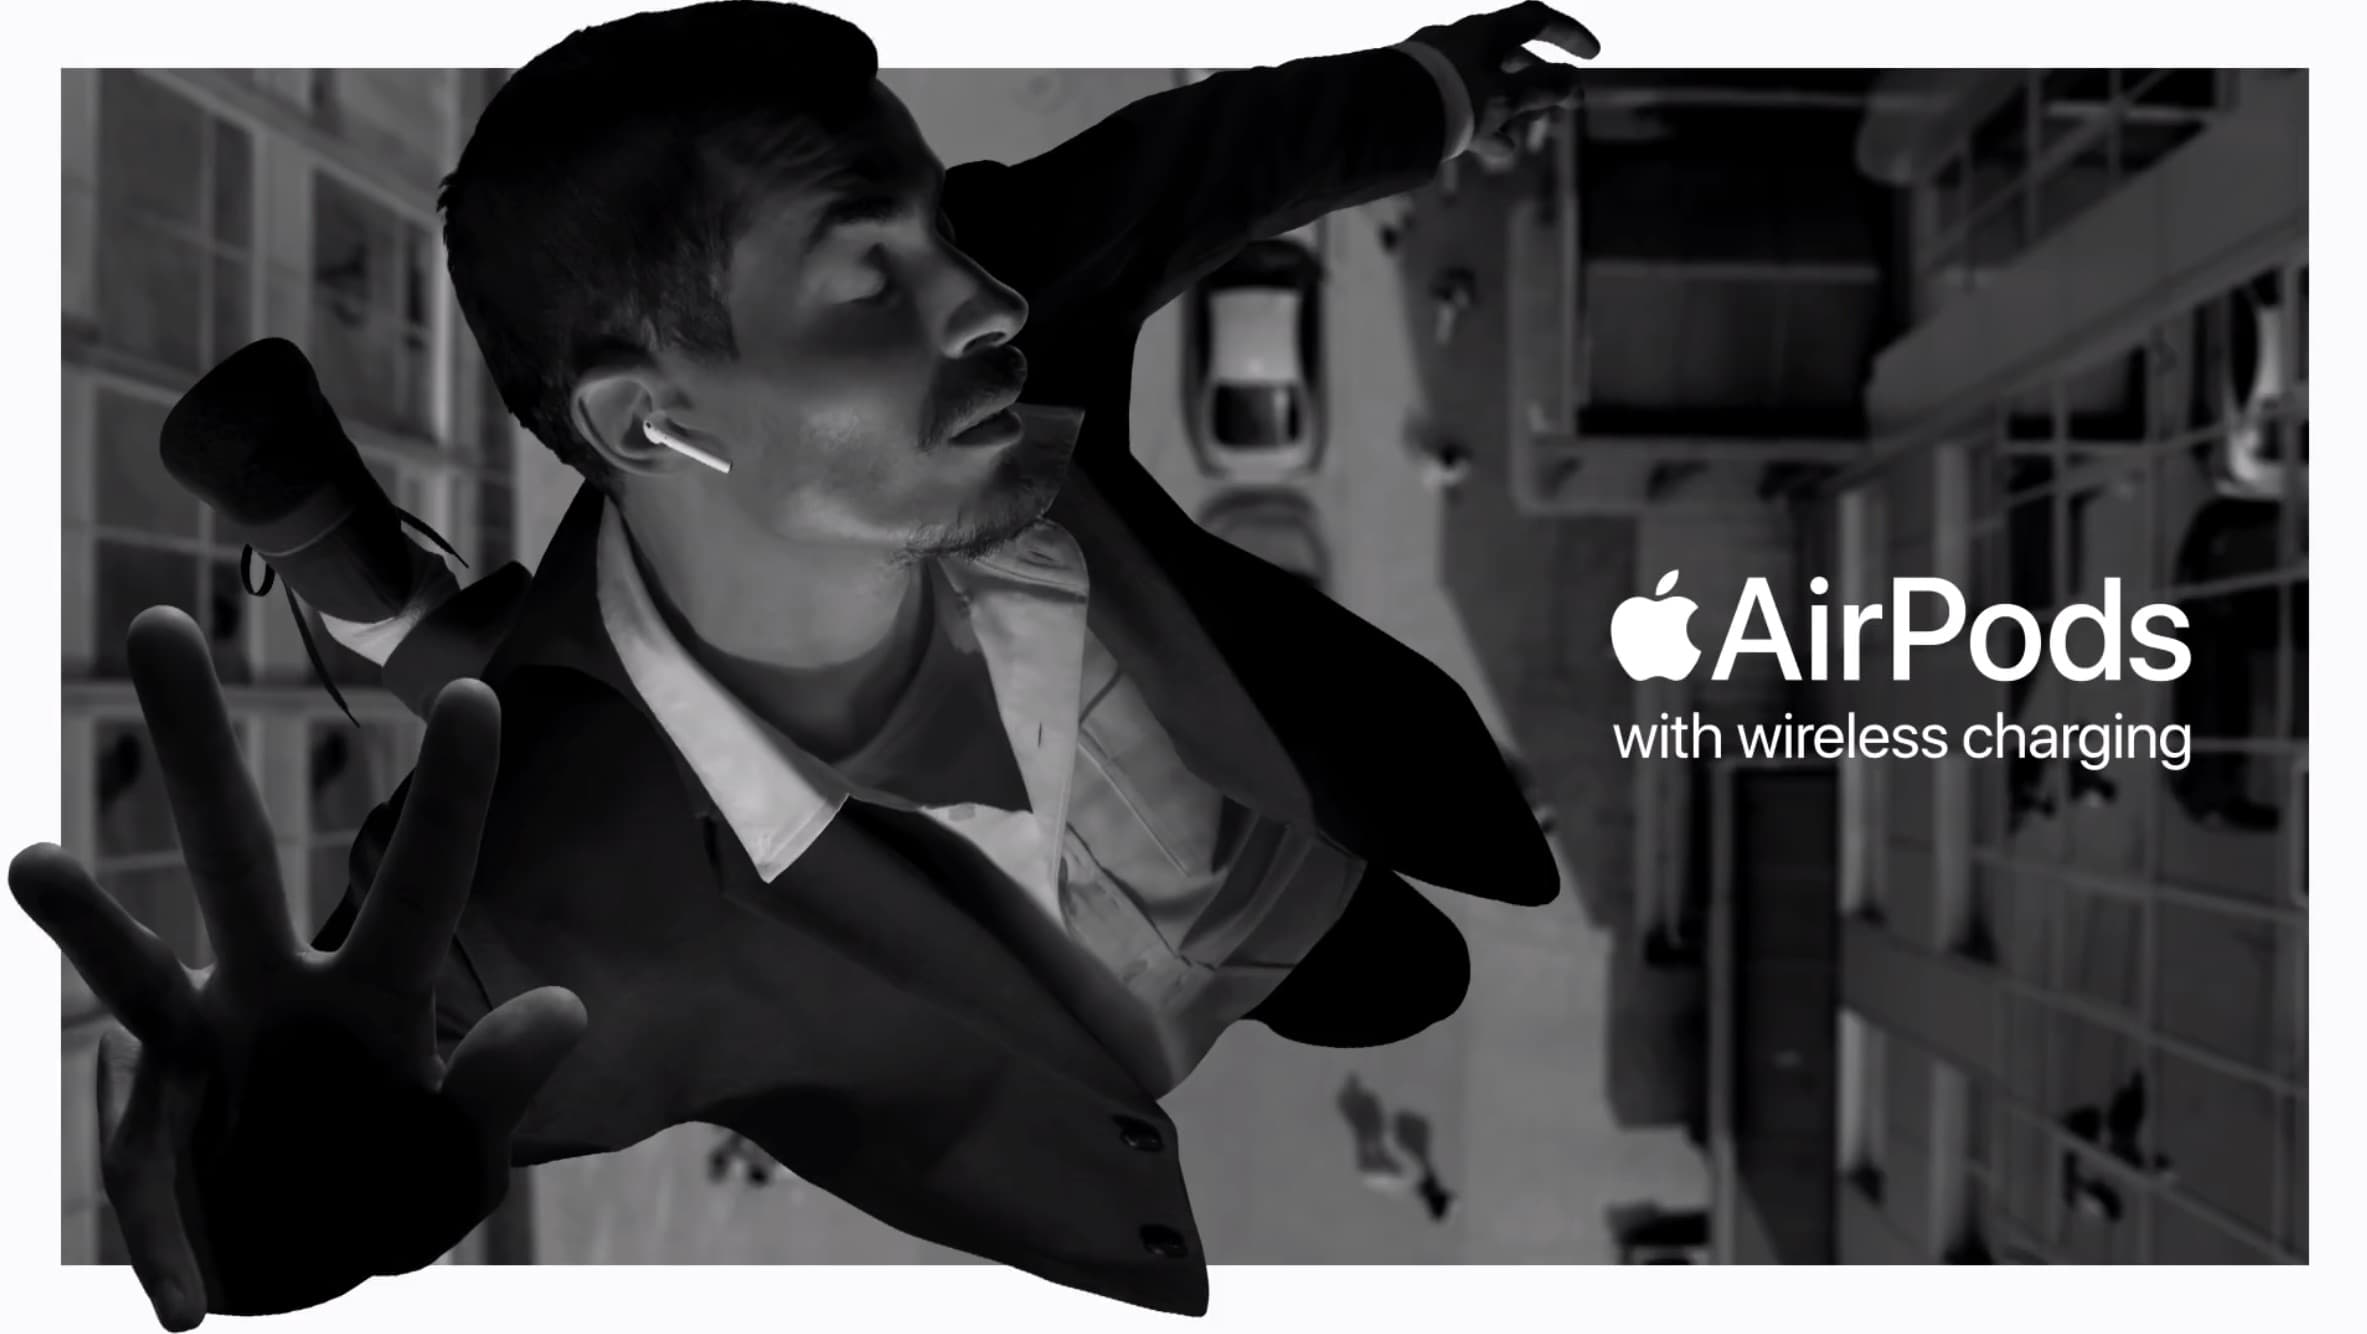 Bounce ad for AirPods1